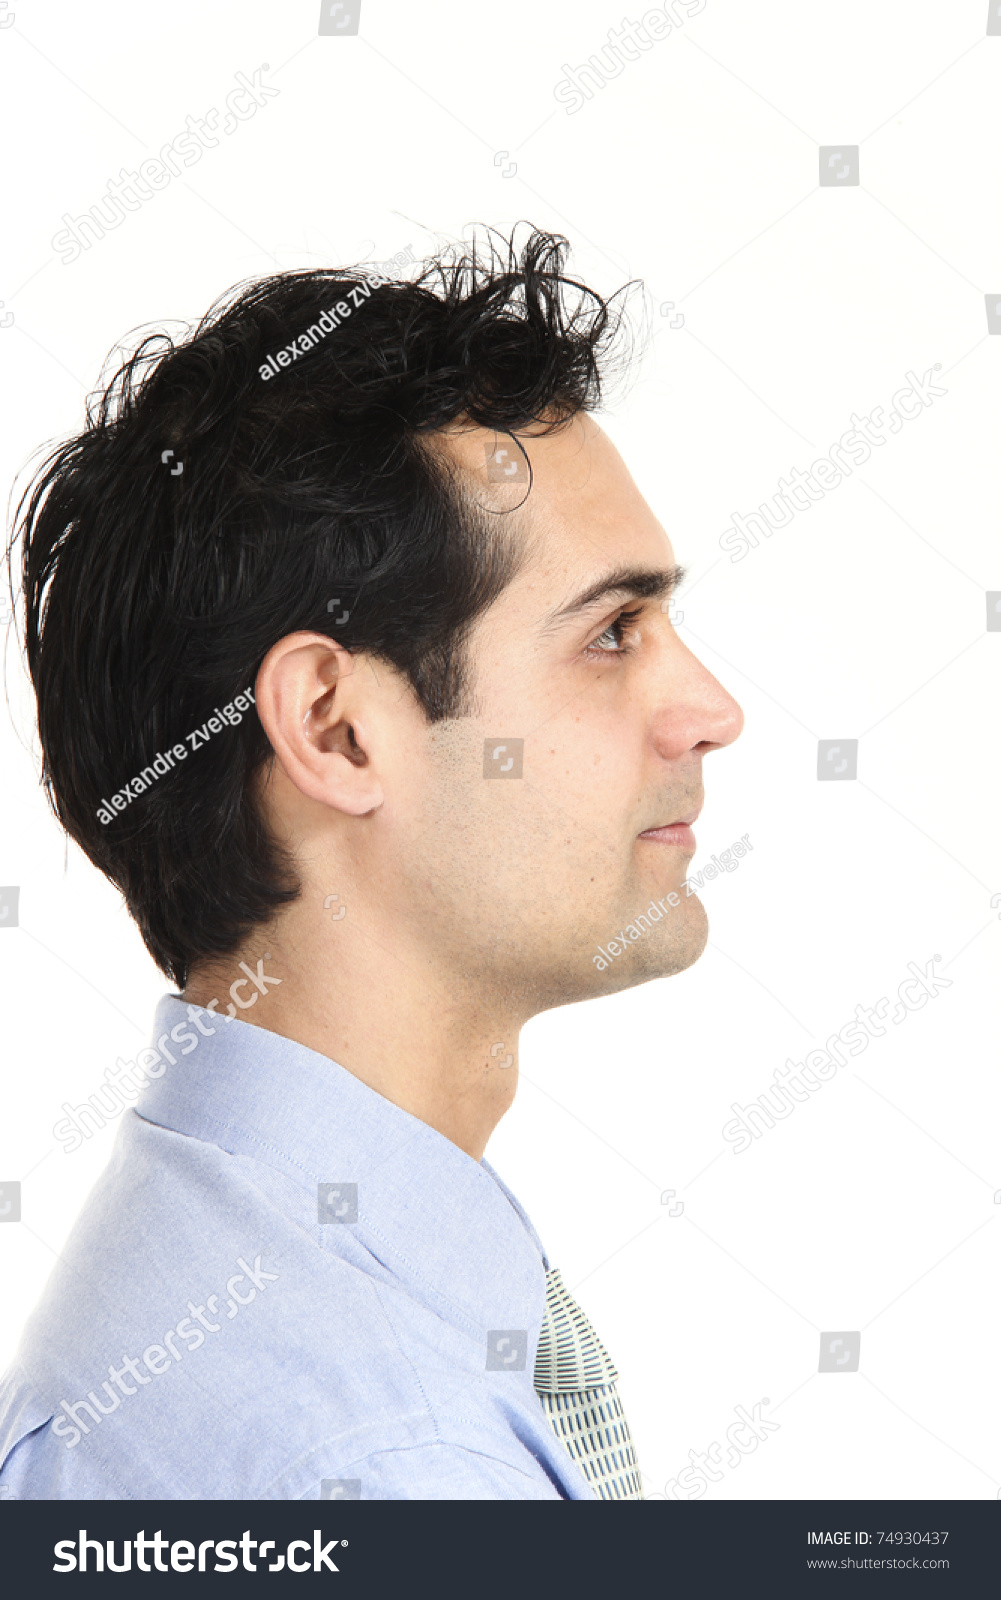 muñeco - Muñeco para calcular la estatura Stock-photo-close-up-young-businessman-isolated-on-white-background-74930437